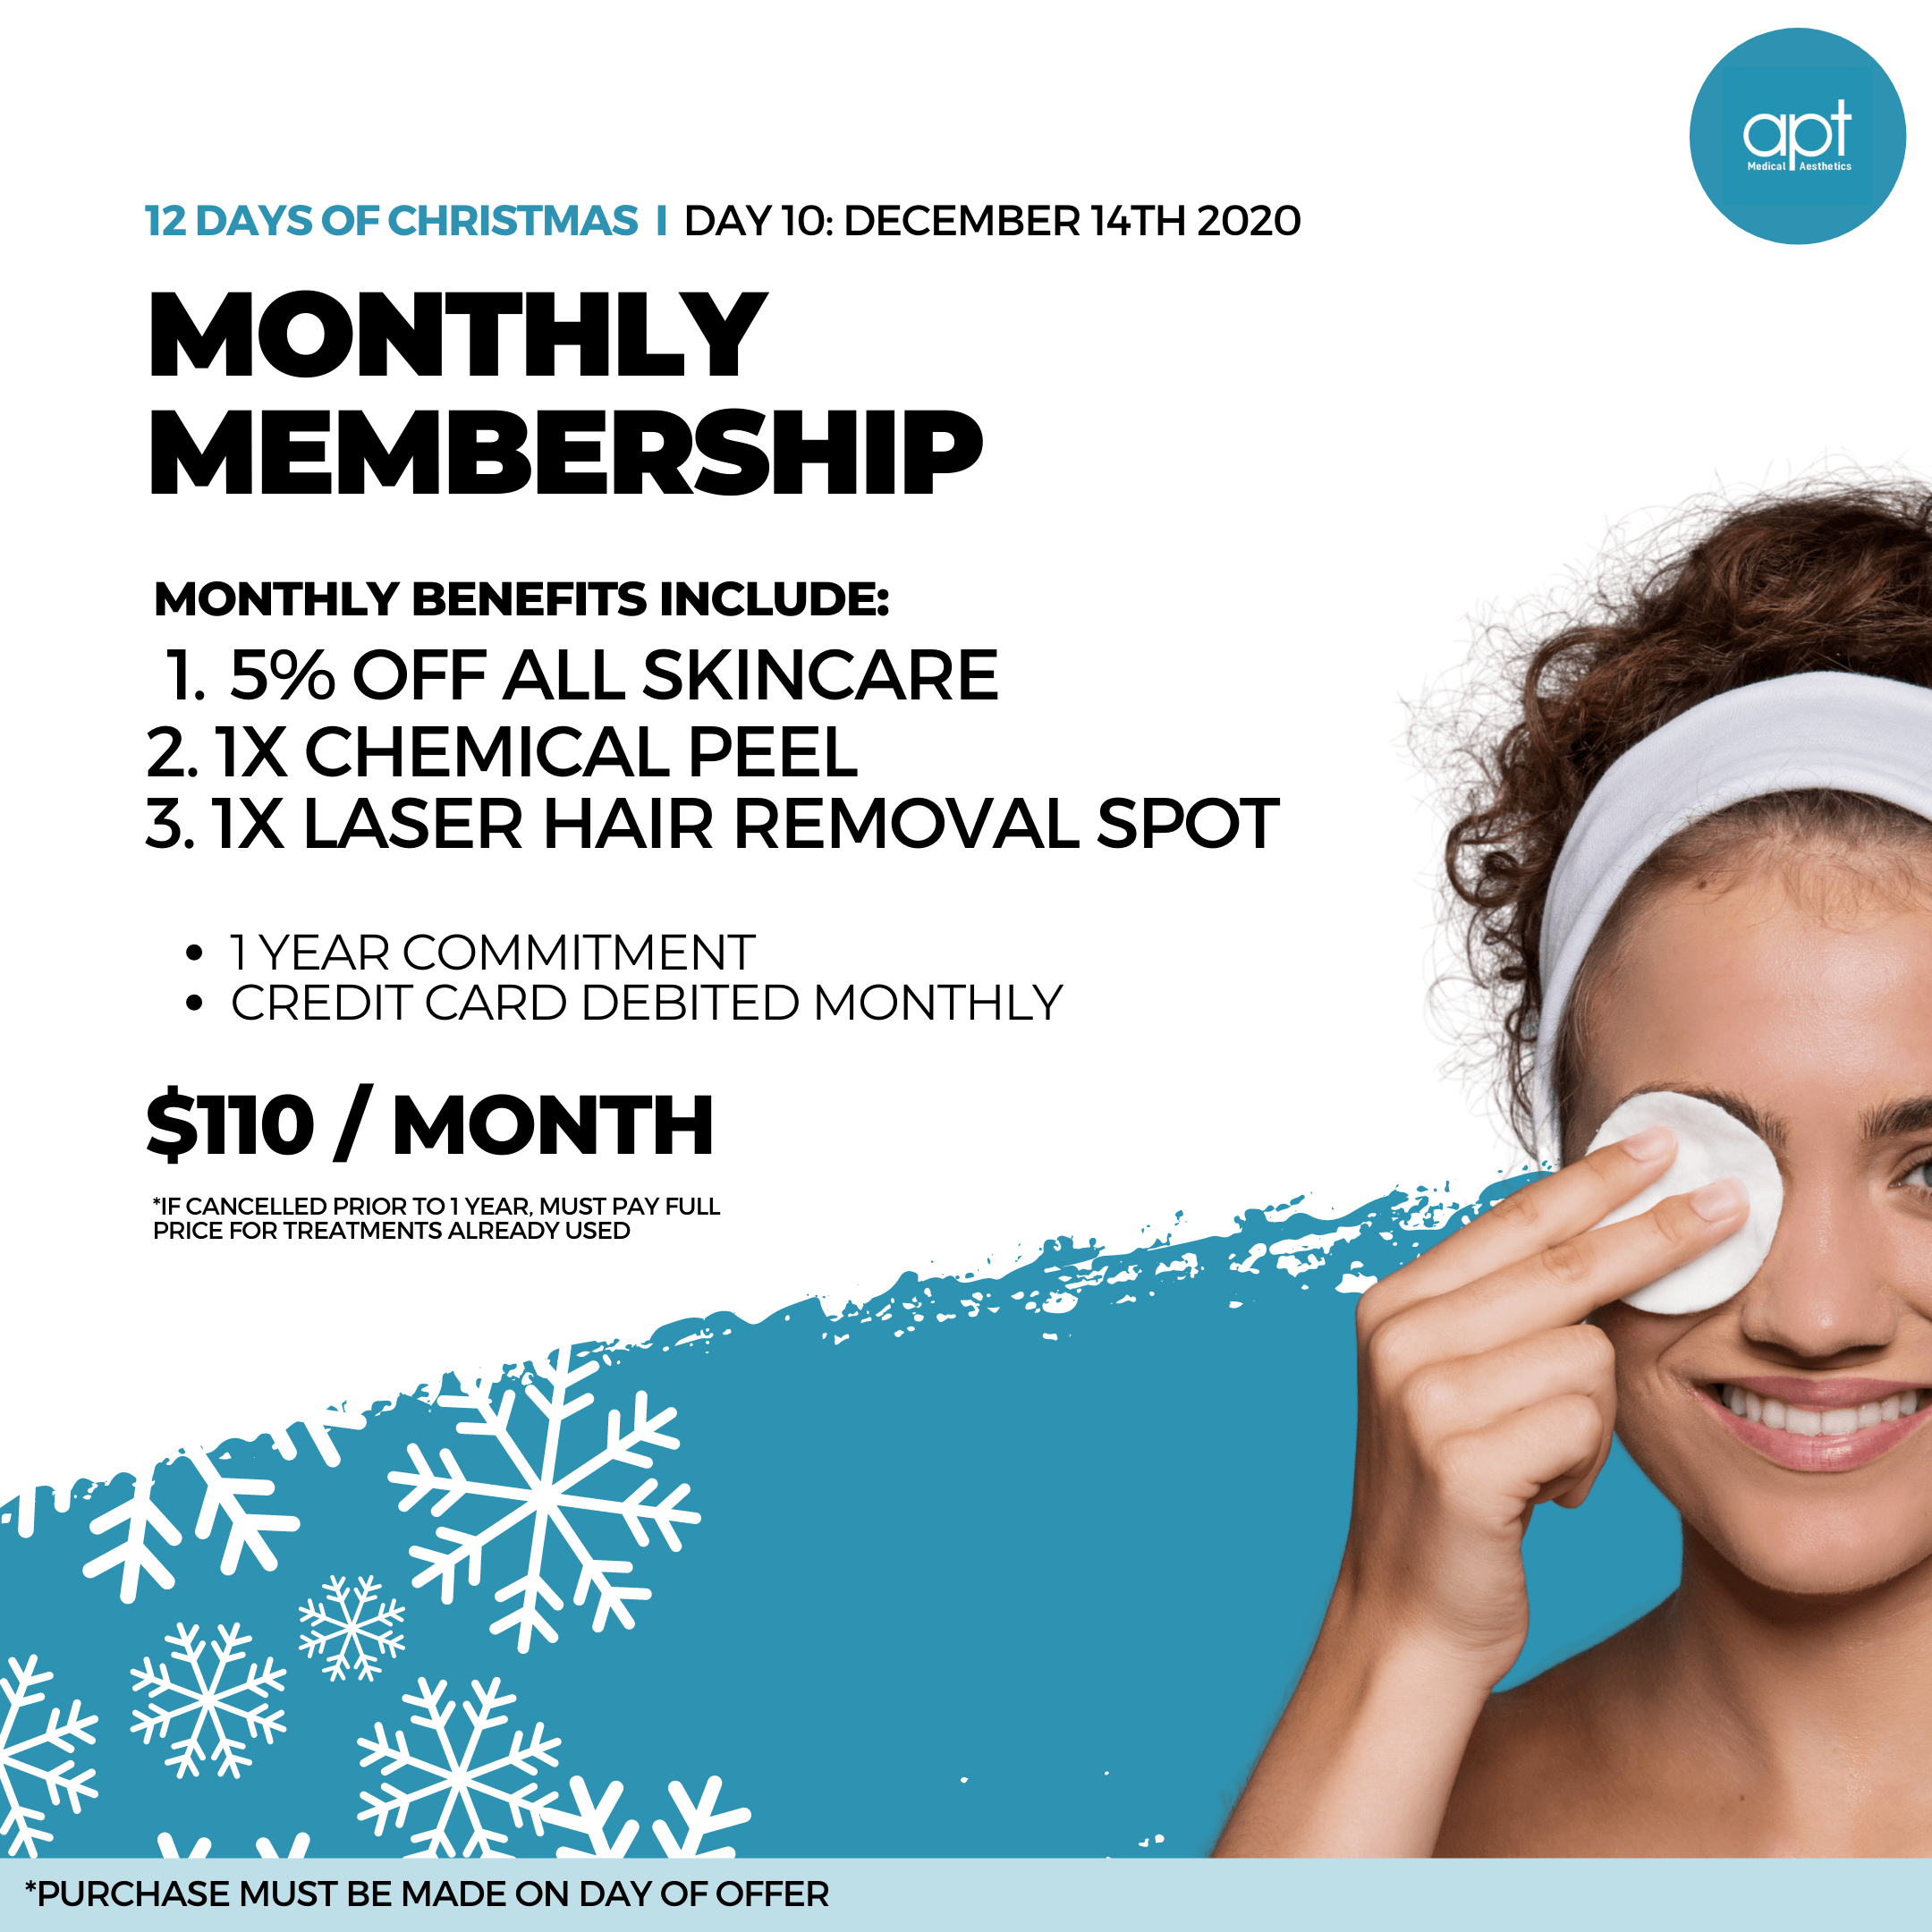 Monthly promotion Flyer Day 10 - APT Medical Aesthetics